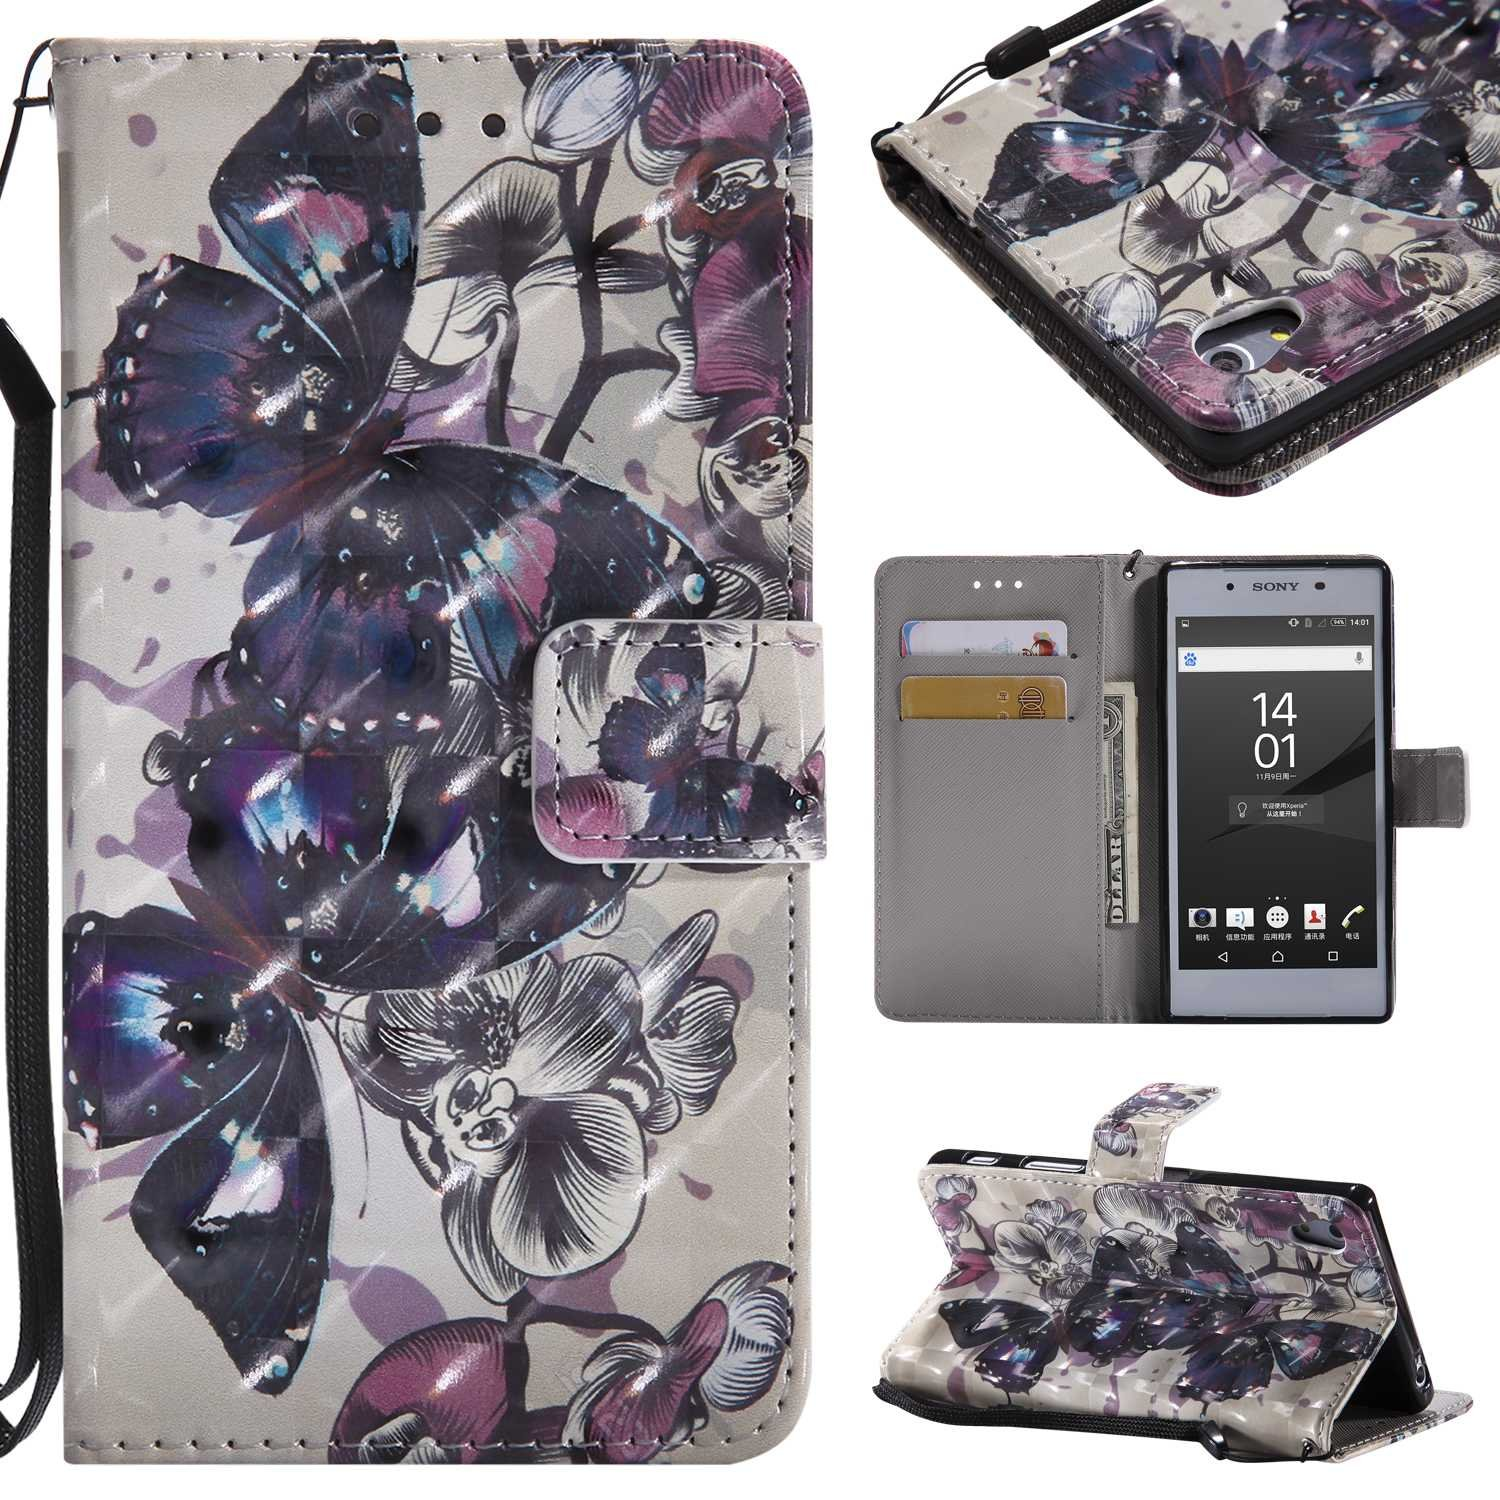 Sony Xperia Z5 Case, Conber Diamond Leather Case with [free Tempered Glass Screen Protector][Card Holder][Hand Strap], Sony Xperia Z5 Premium Leather Wallet Flip Case with Stand Cover, Colorful Painting Pattern Design Protective Shell Case Cover for Sony X